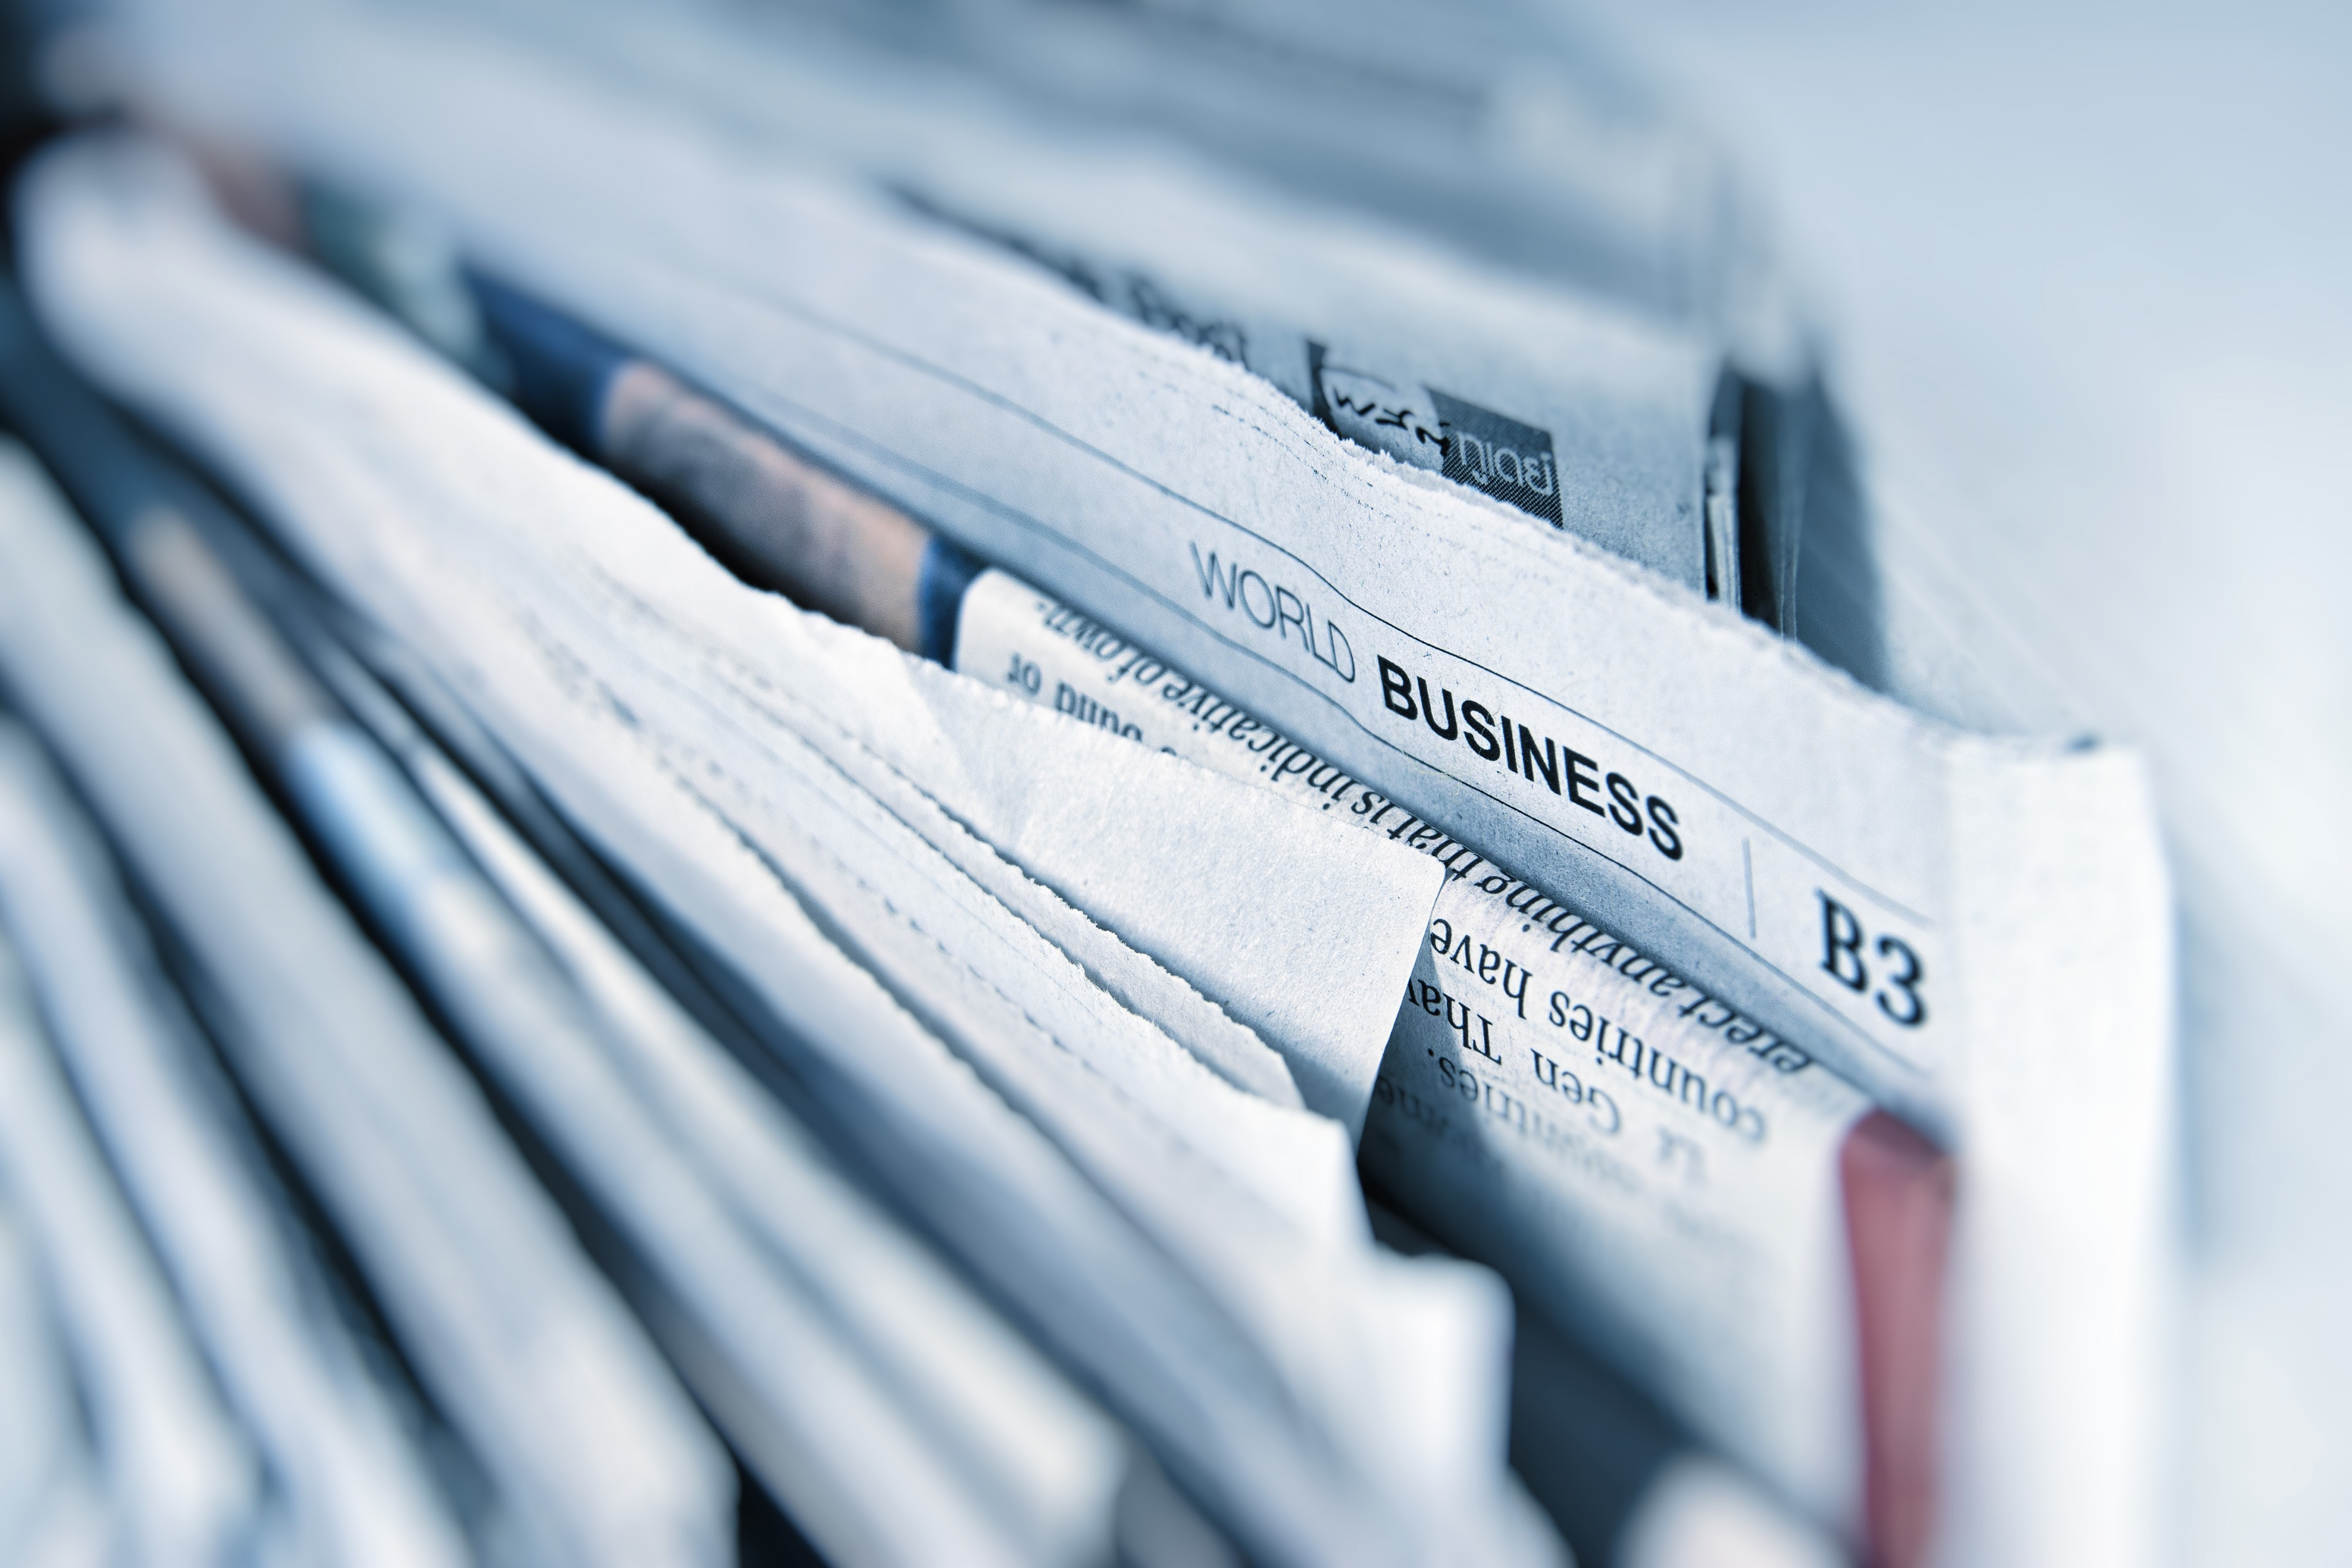 Image of the world news section of the papers